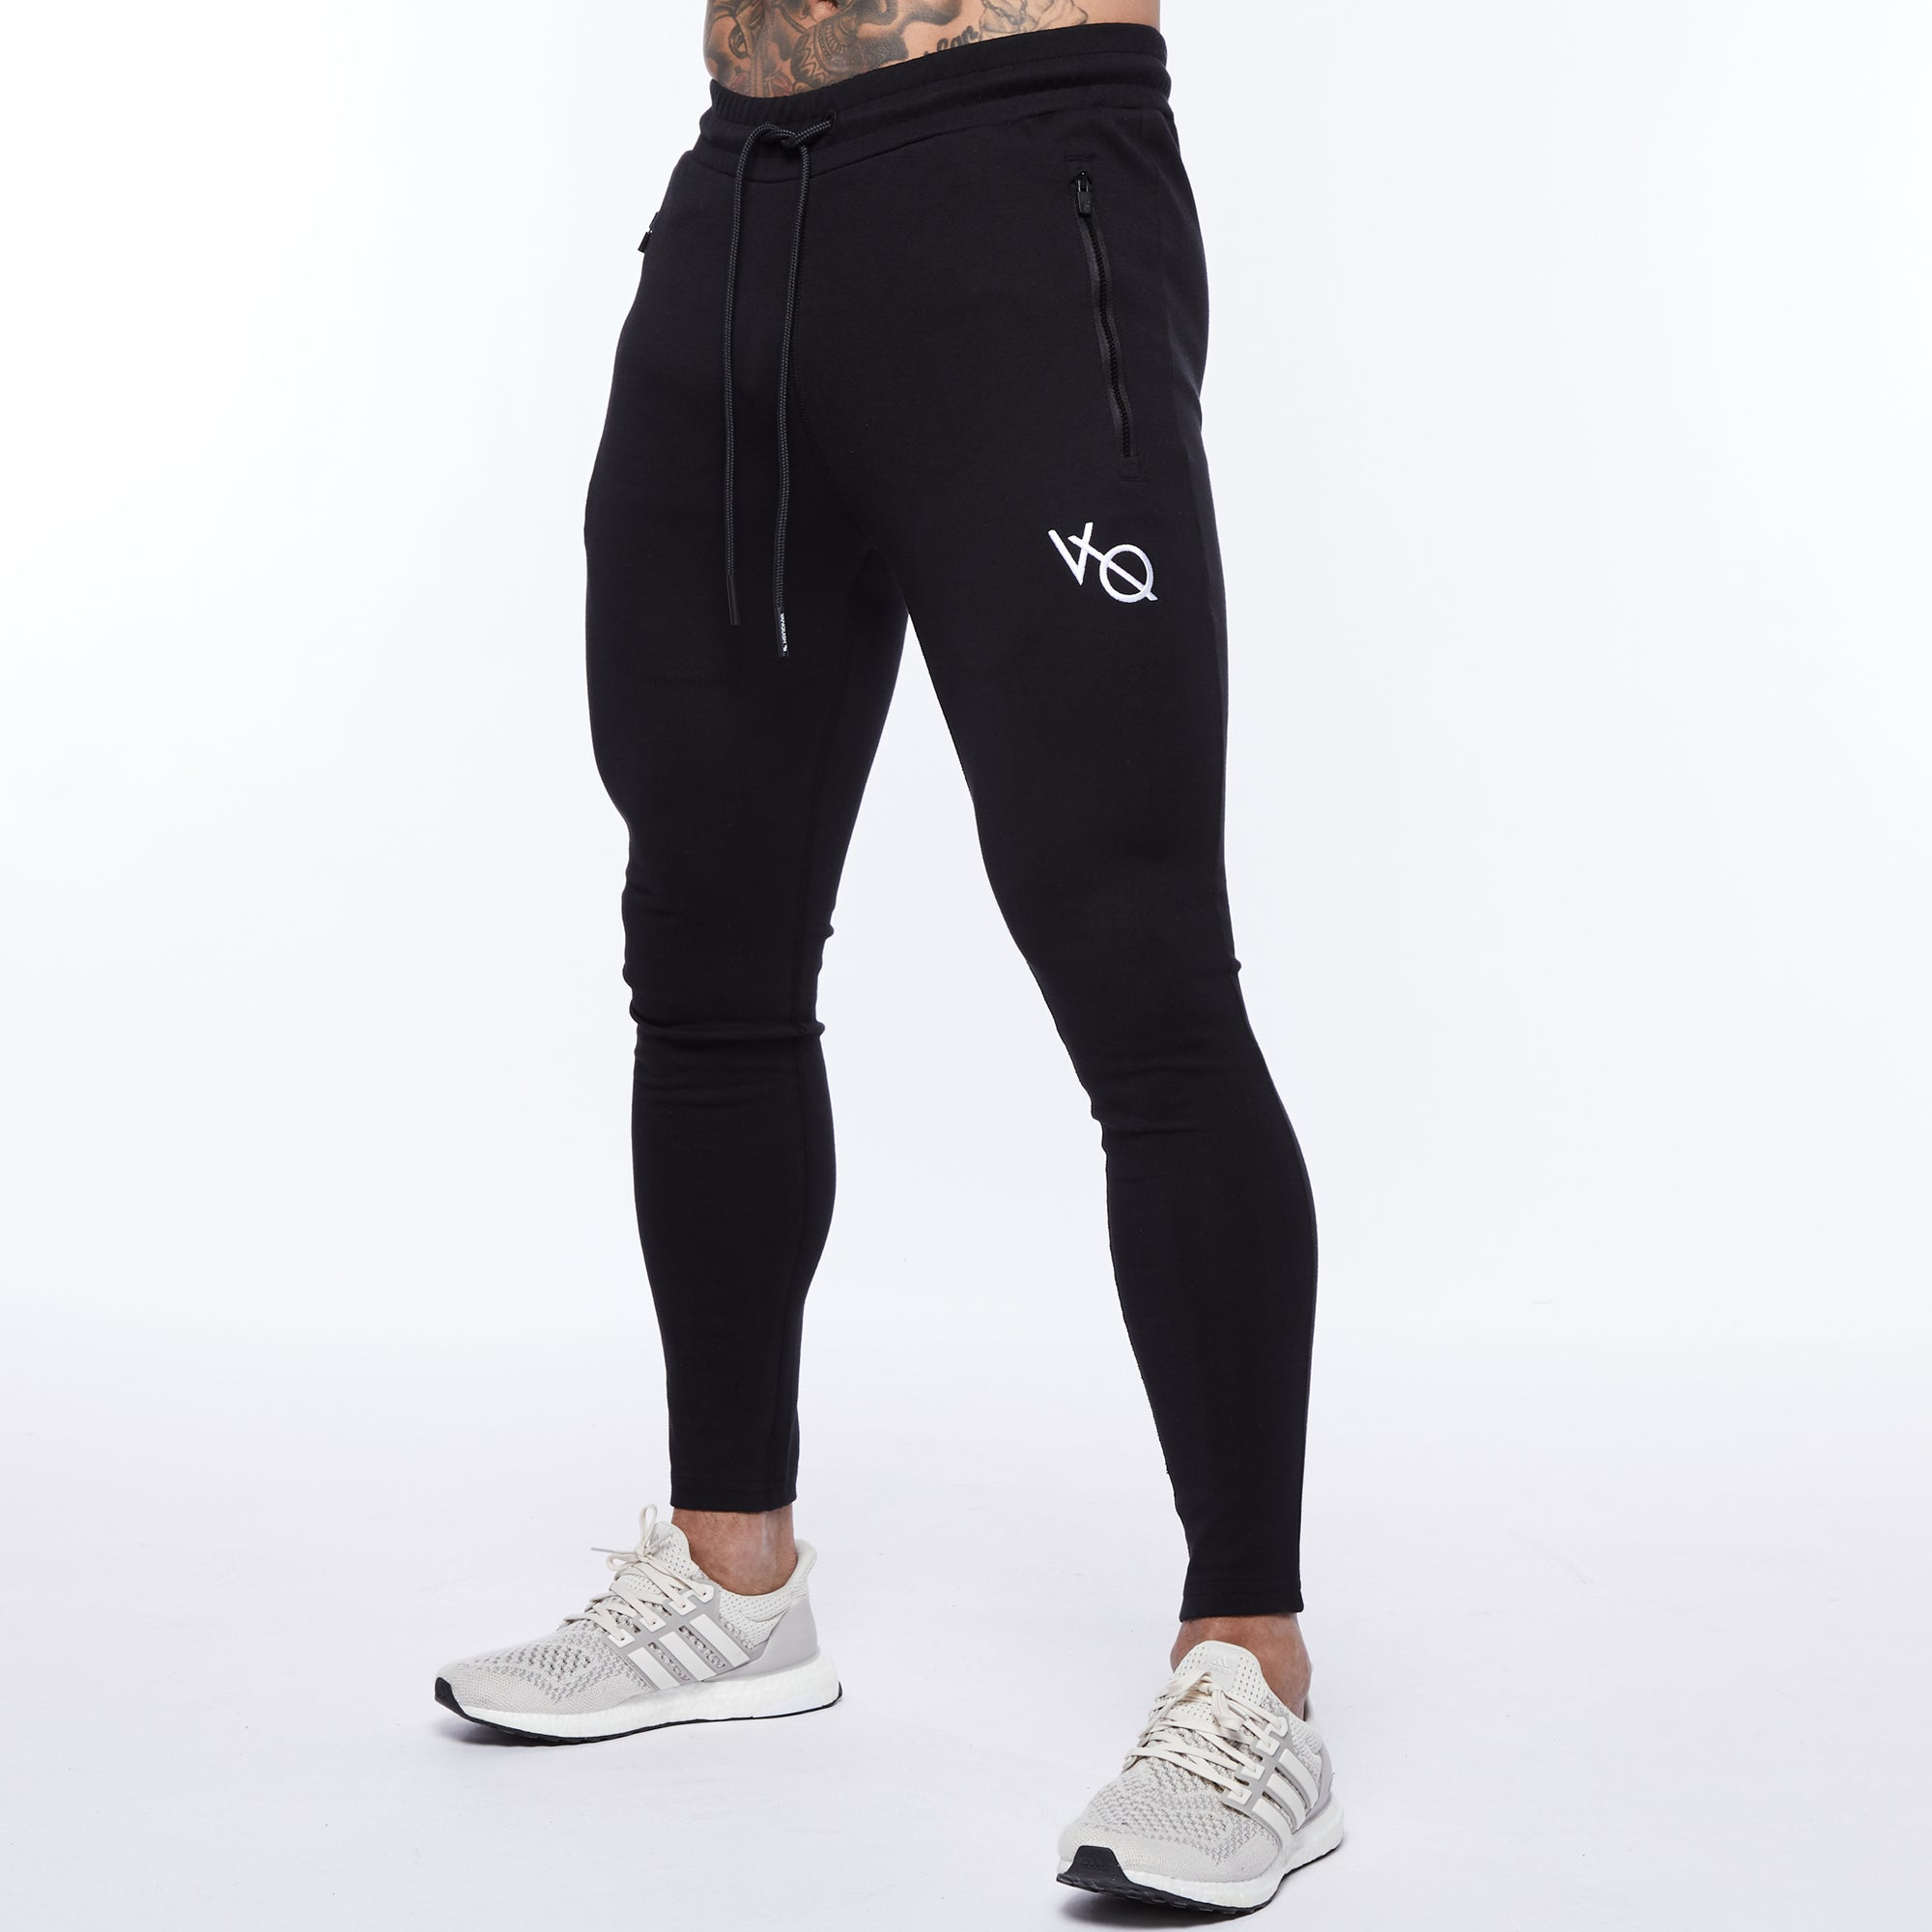 Vanquish Essential Black Tapered Sweatpants